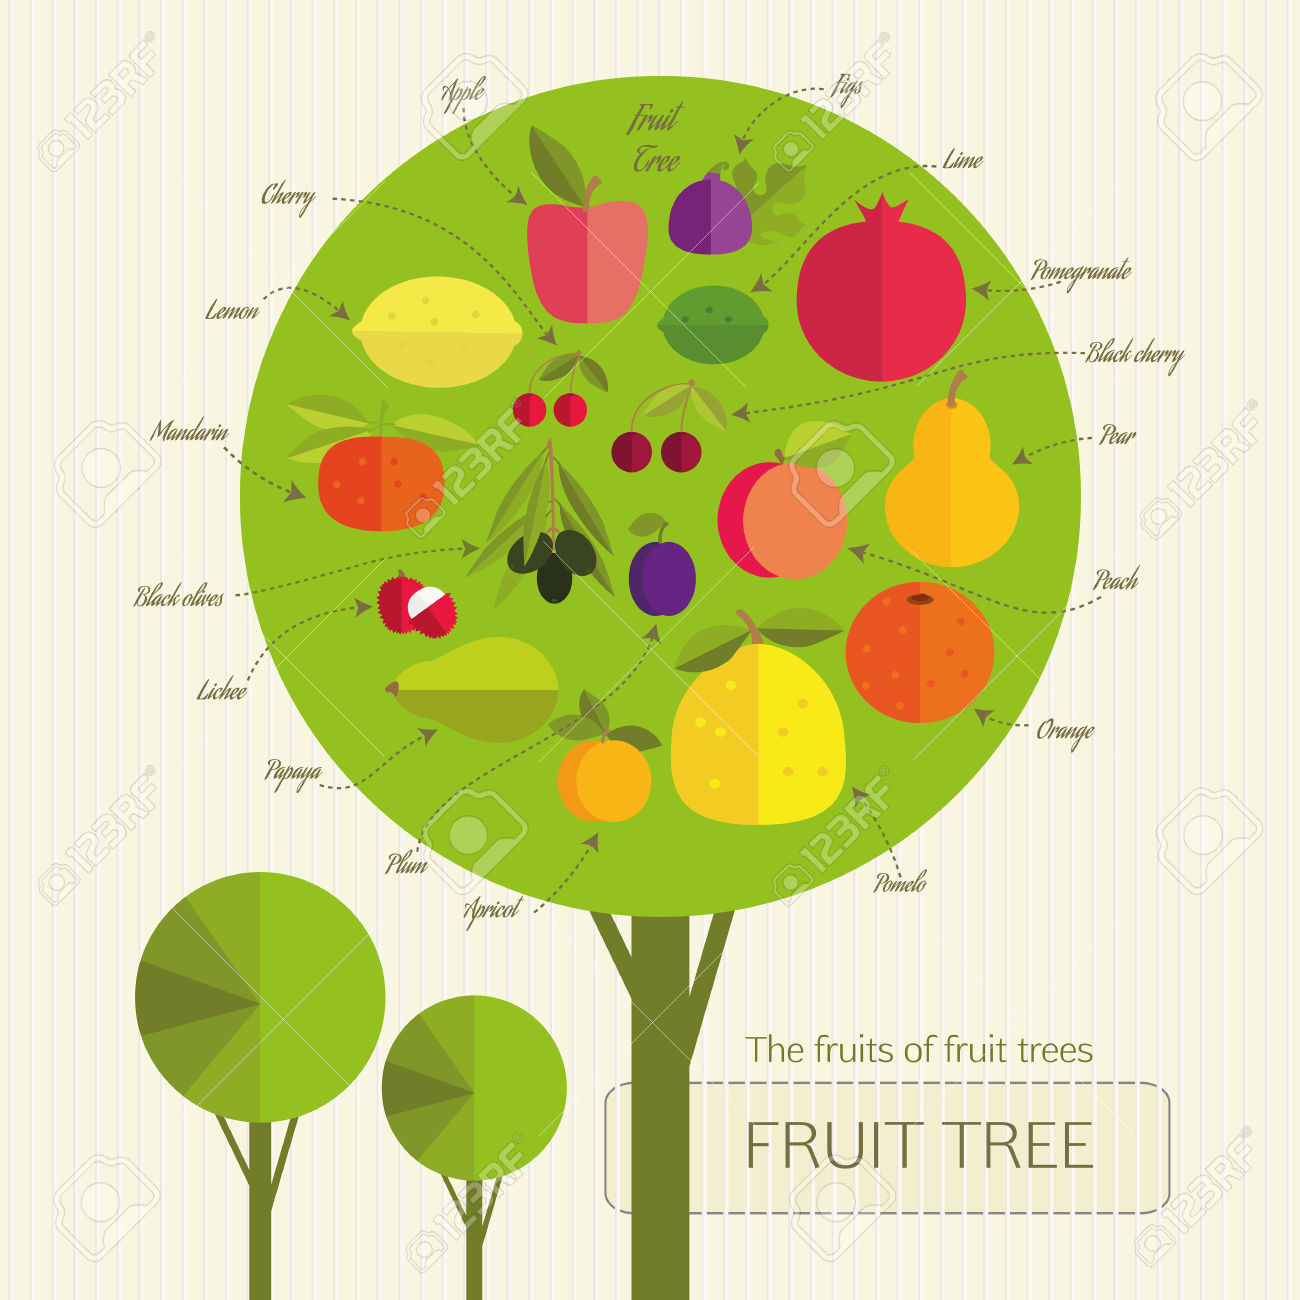 Conditional Fruit Tree With Fruits That Grow On Trees From.